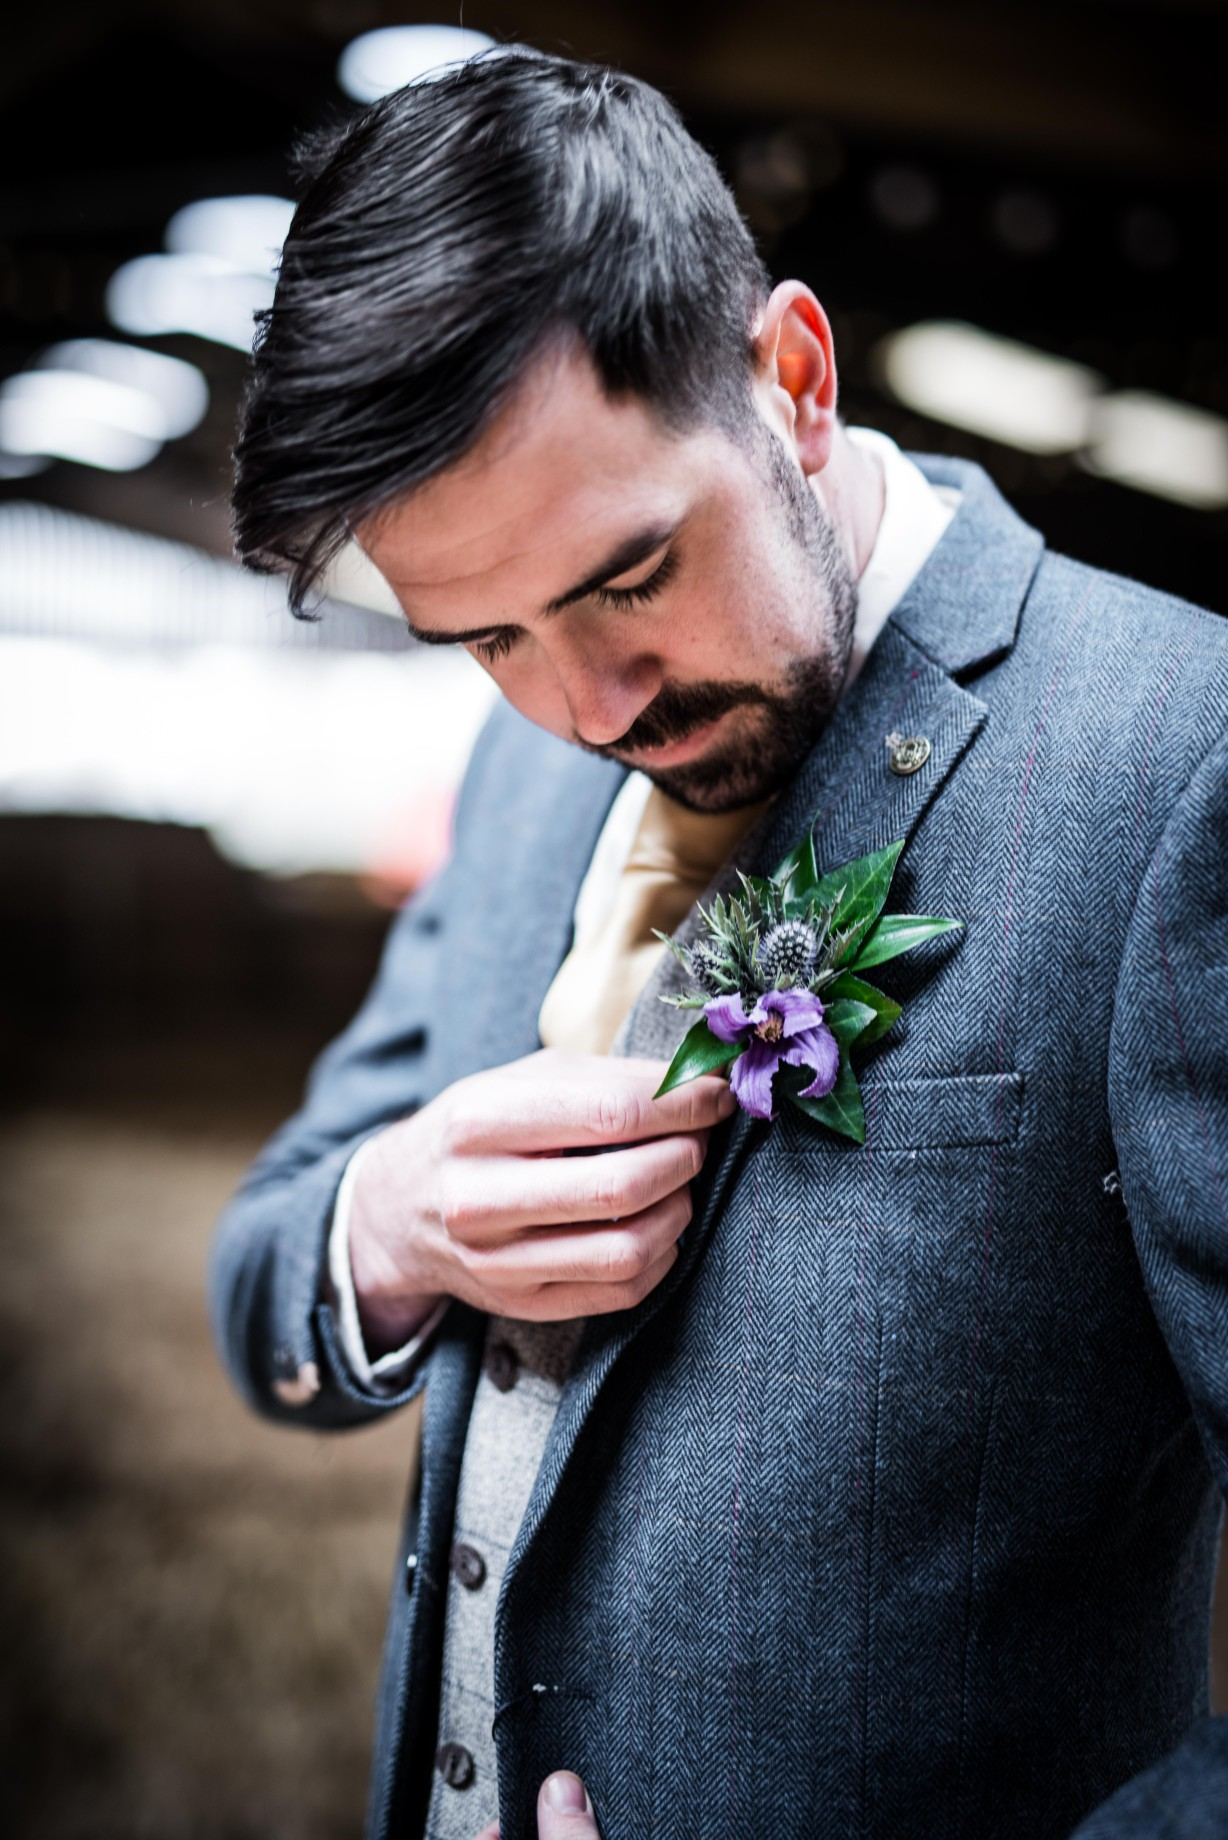 Peacock barns - alternative unconventional wedding photoshoot - rustic decadent - groom button hole